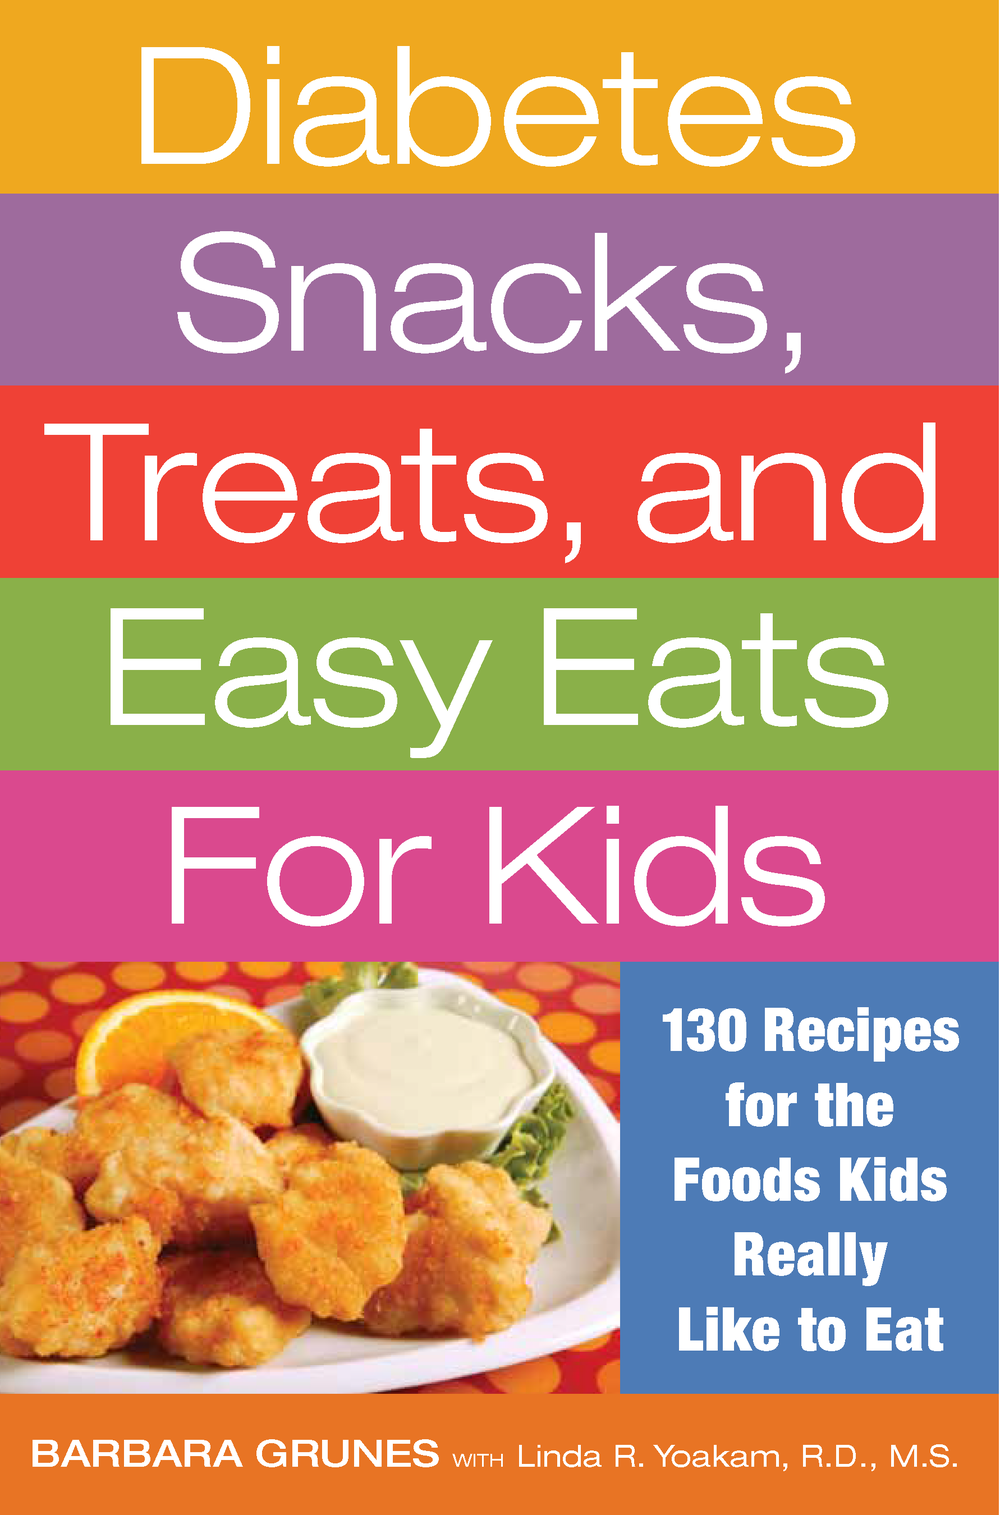 Diabetes Snacks Treats for Kids_Page_01.png